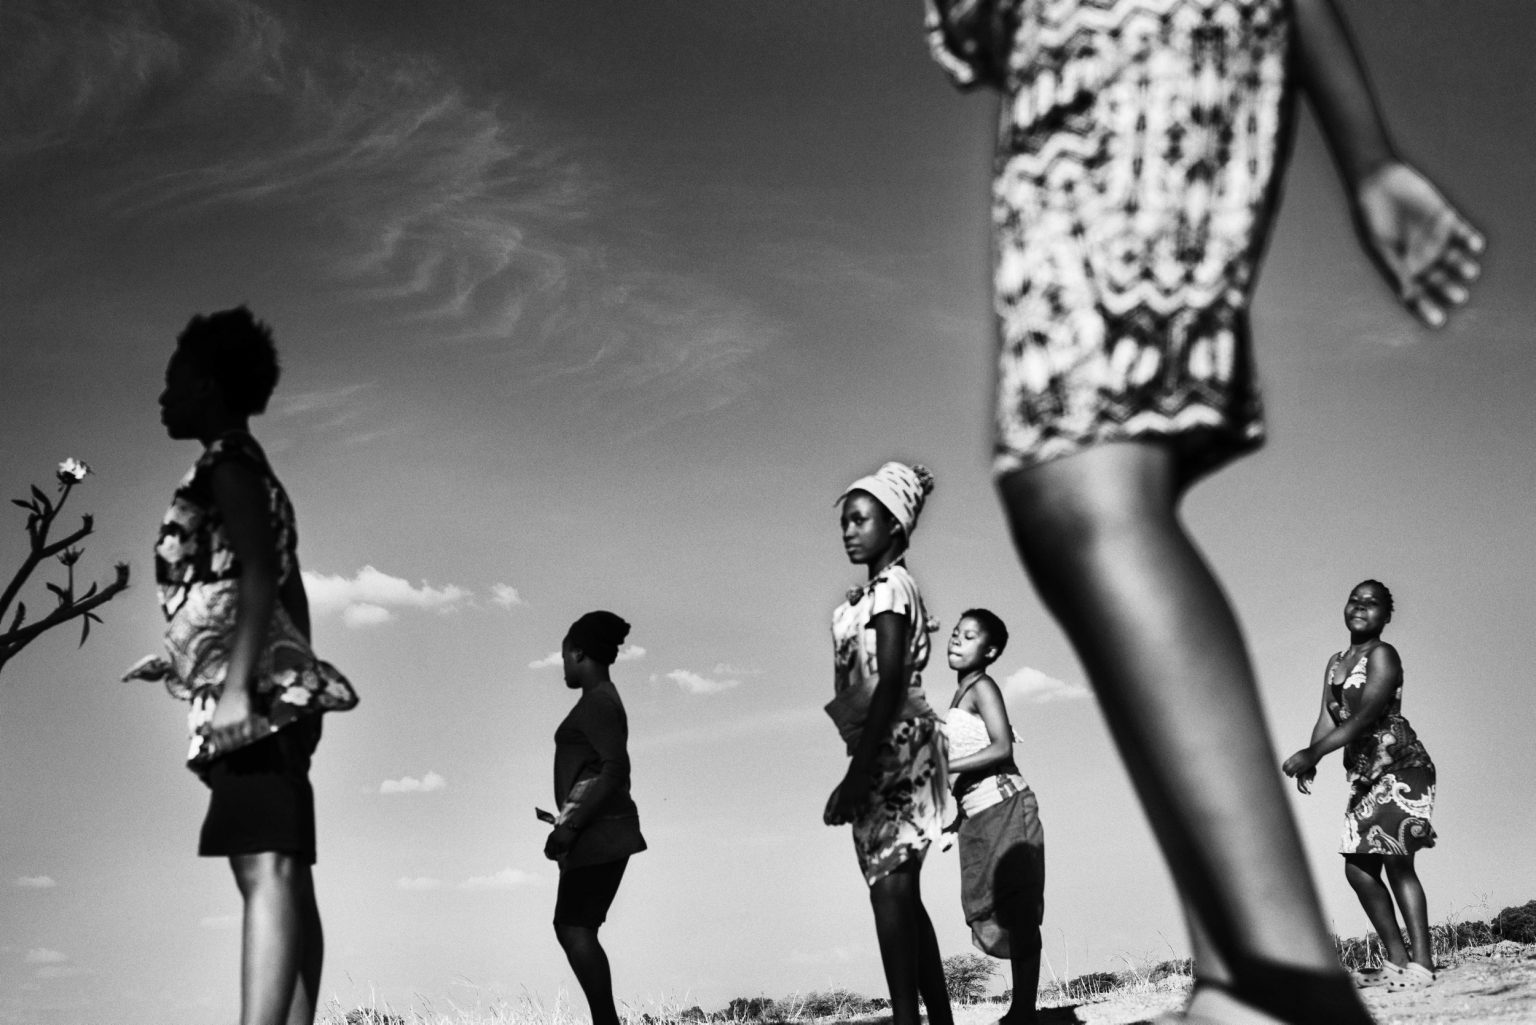 On Saturdays the girls from Loniedzani spend the whole day together playing, dancing and doing chores. Lusaka, Zambia, 2019